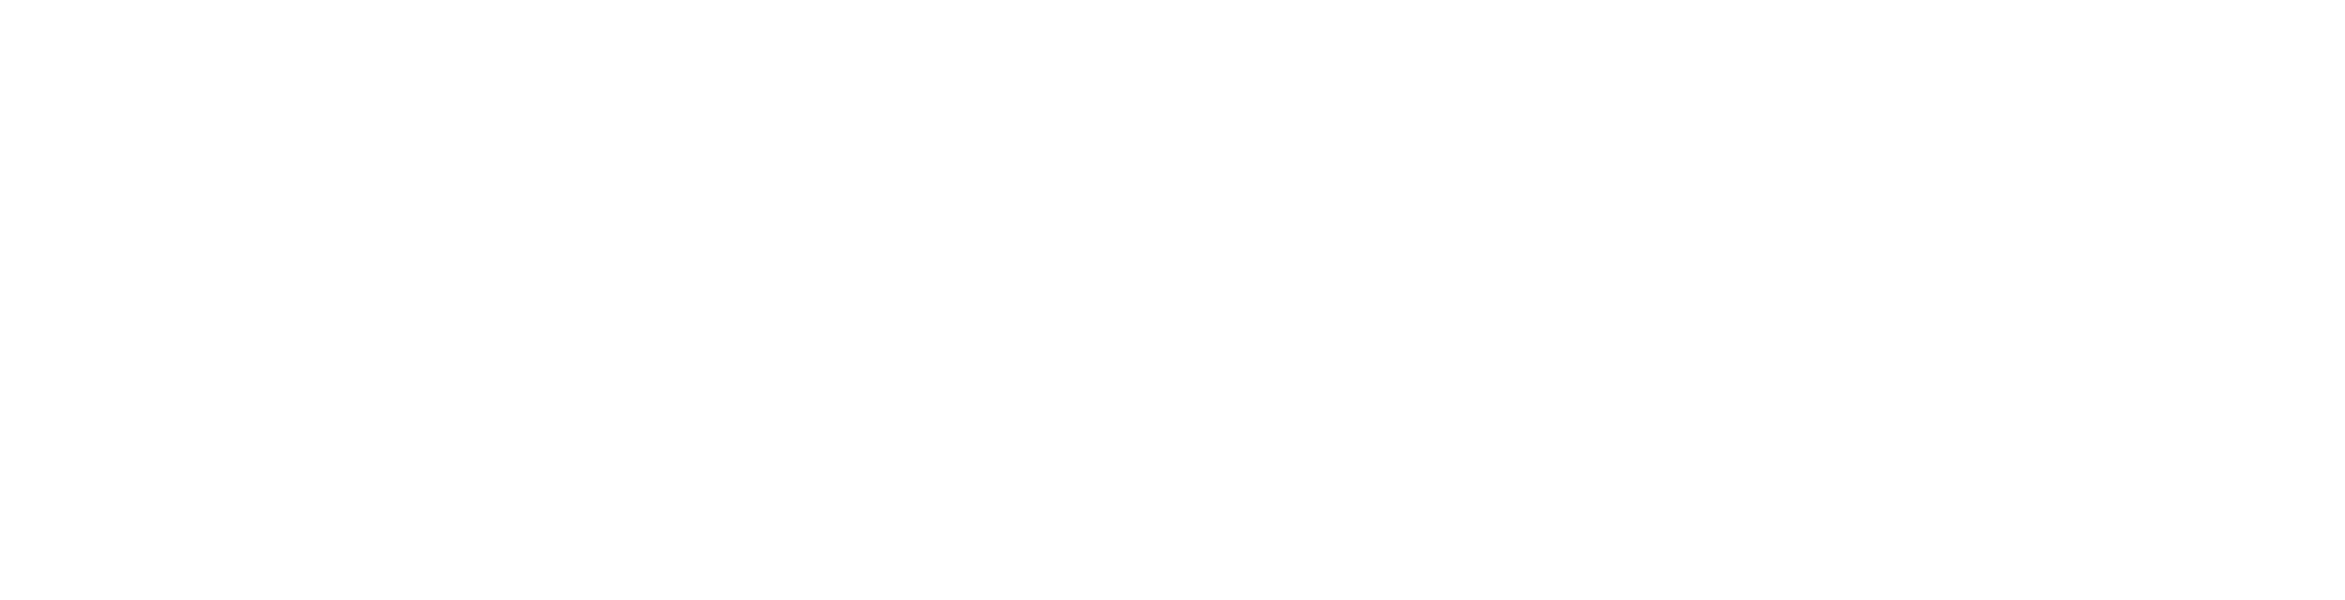 The WPCampus 2019 conference, where WordPress meets higher education, will take place July 25-27, 2019 in Portland, Oregon.